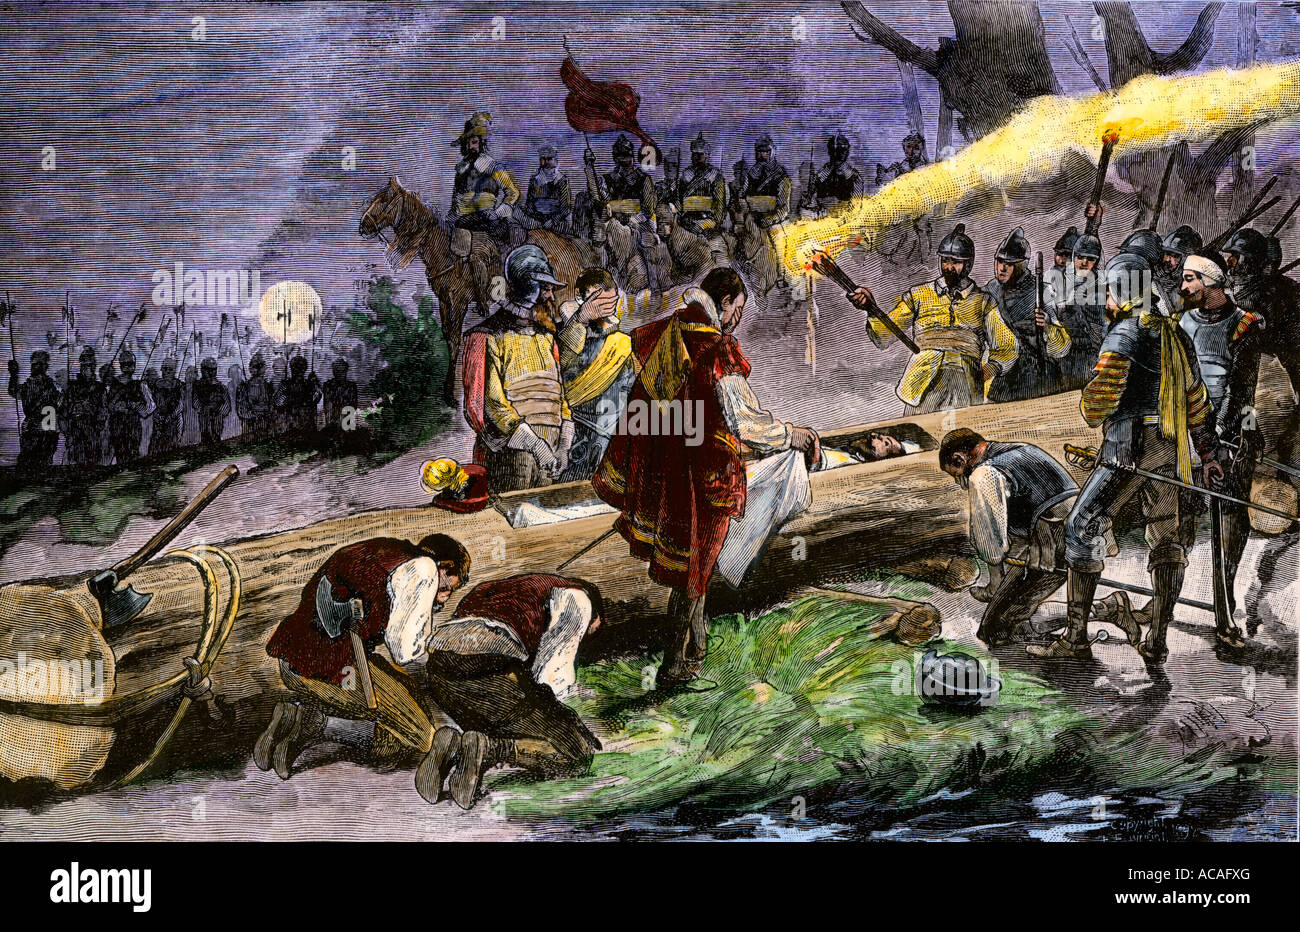 Burial of DeSoto in the Mississippi River to keep his death secret from hostile Native Americans 1542. Hand-colored - Stock Image